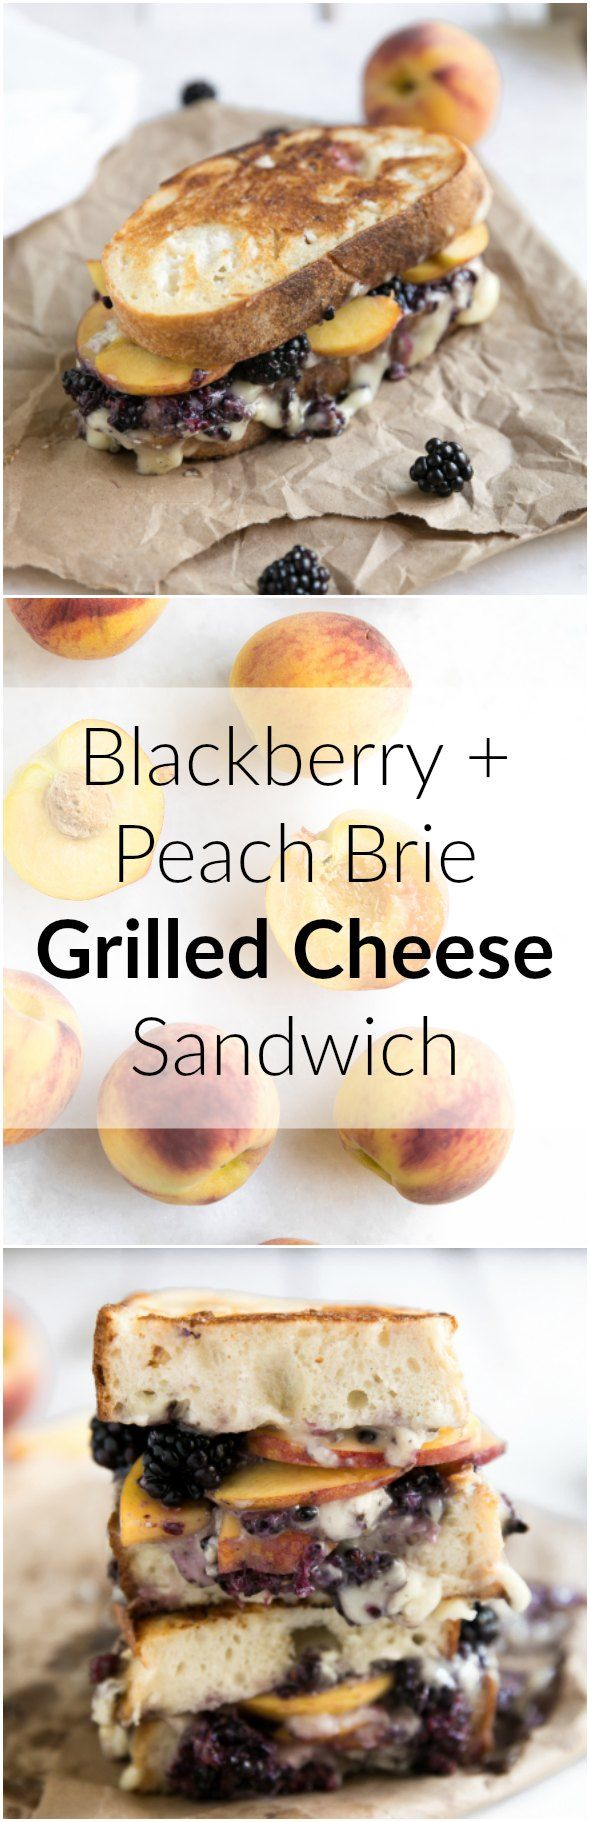 Blackberry and Peach Brie Grilled Cheese Sandwich + An At-Home Wine Tour Through France #madeinfrance #sponsored